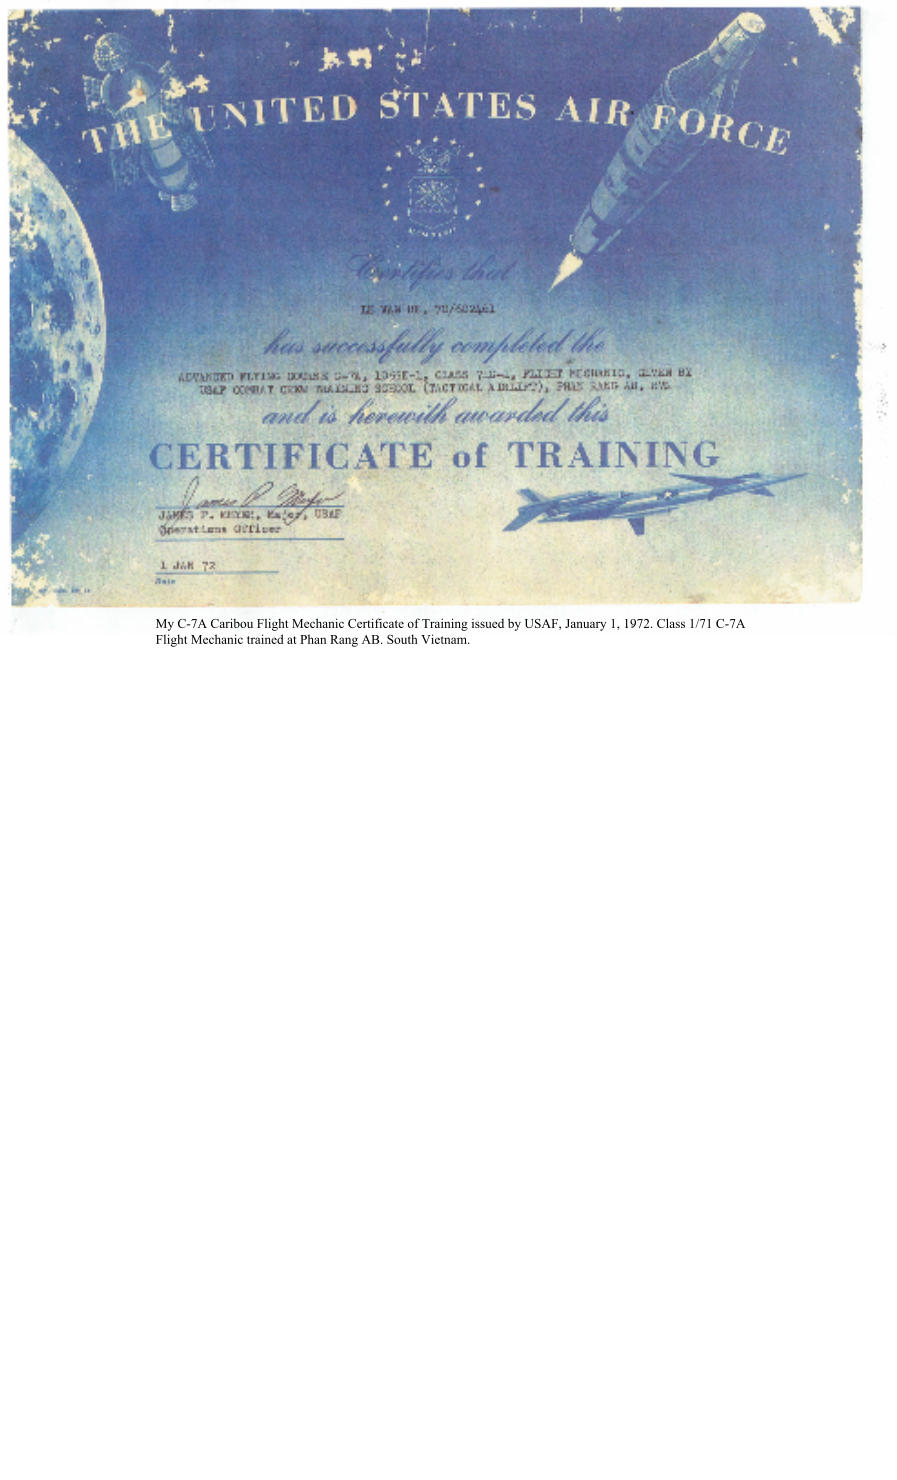 My C-7A Caribou Flight Mechanic Certificate of Training issued by USAF, January 1, 1972. Class 1/71 C-7A Flight Mechanic trained at Phan Rang AB. South Vietnam.